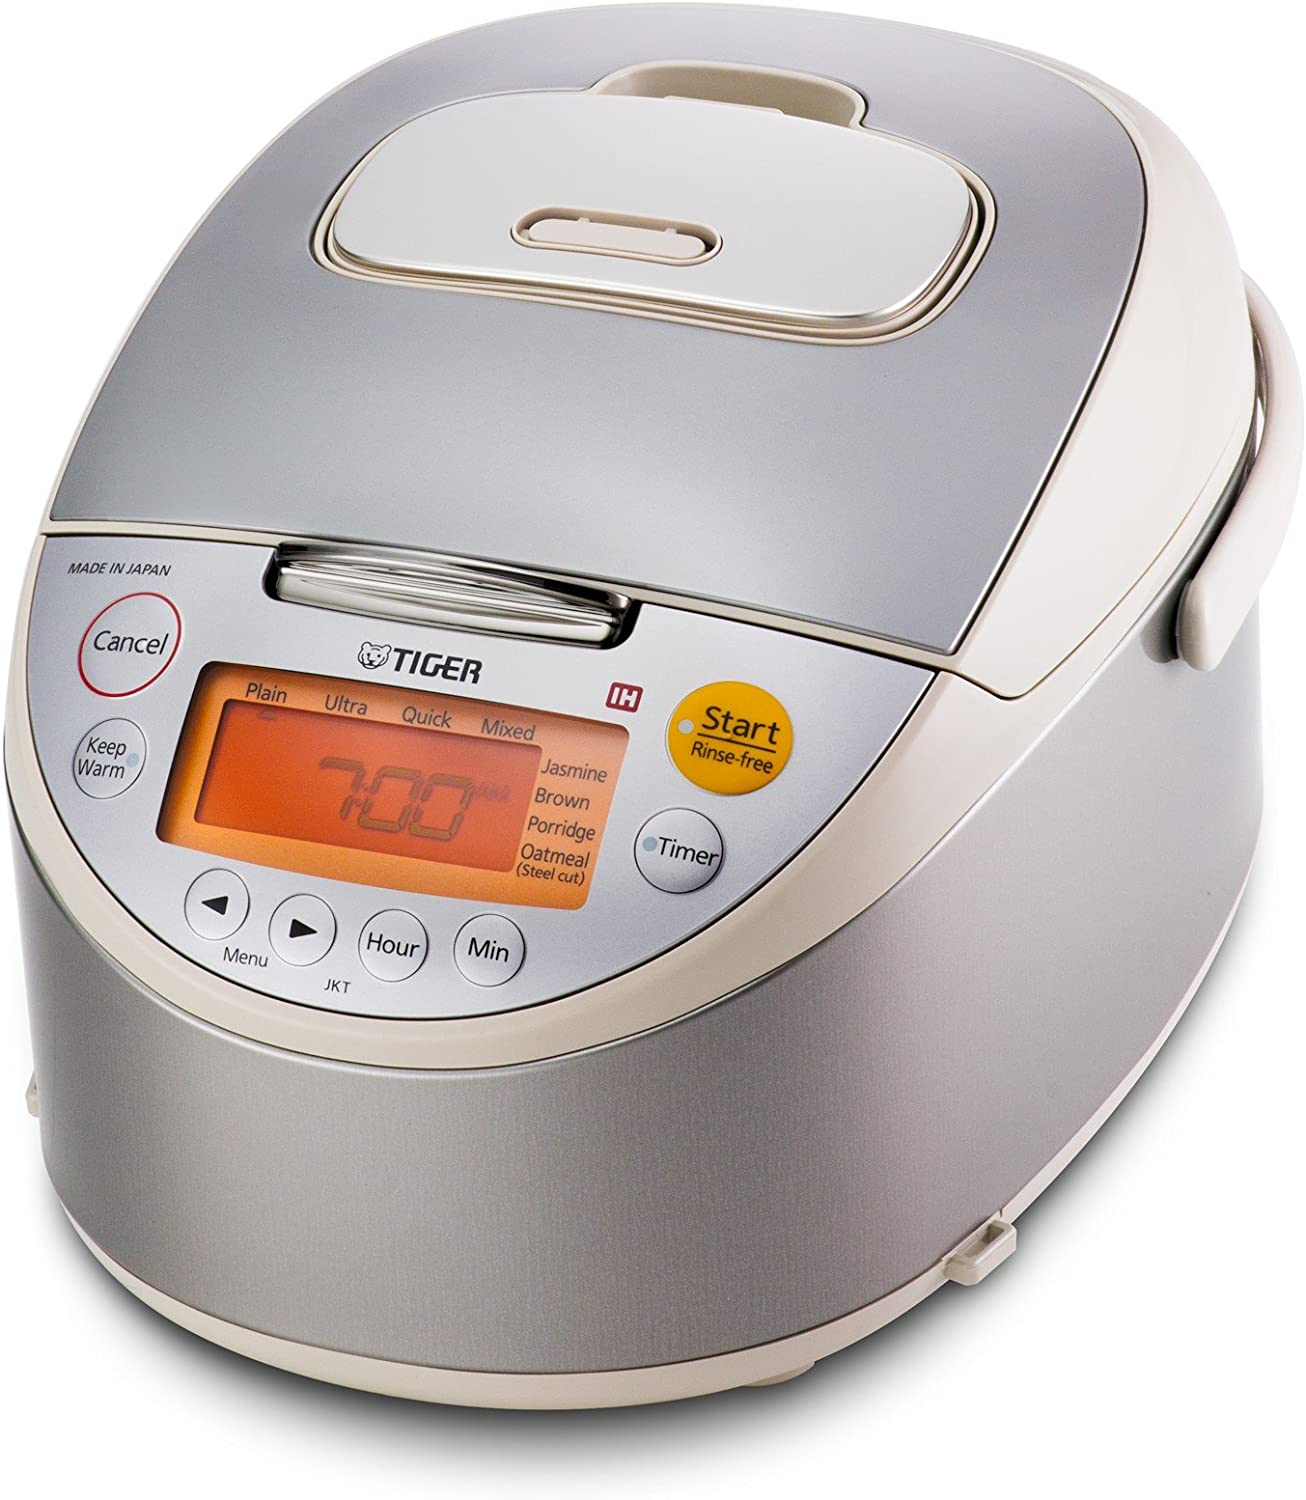 Tiger JKT-B10U-C 5.5-Cup Stainless Steel Rice Cooker, Beige